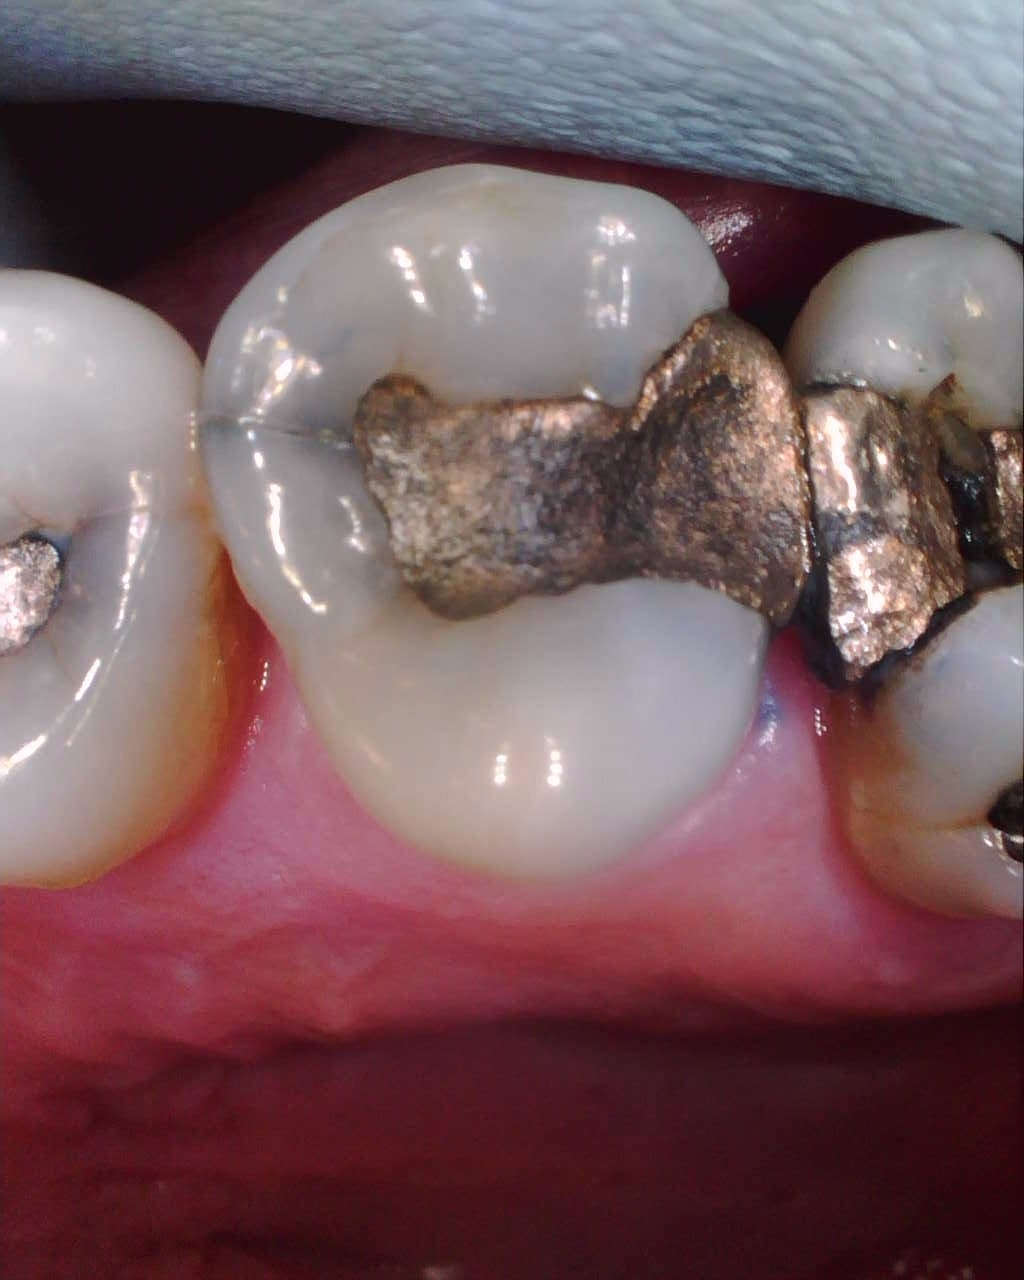 Intraoral Cameras - They say a picture is a thousand words! Let us discuss your dental treatment with a few simple pictures!